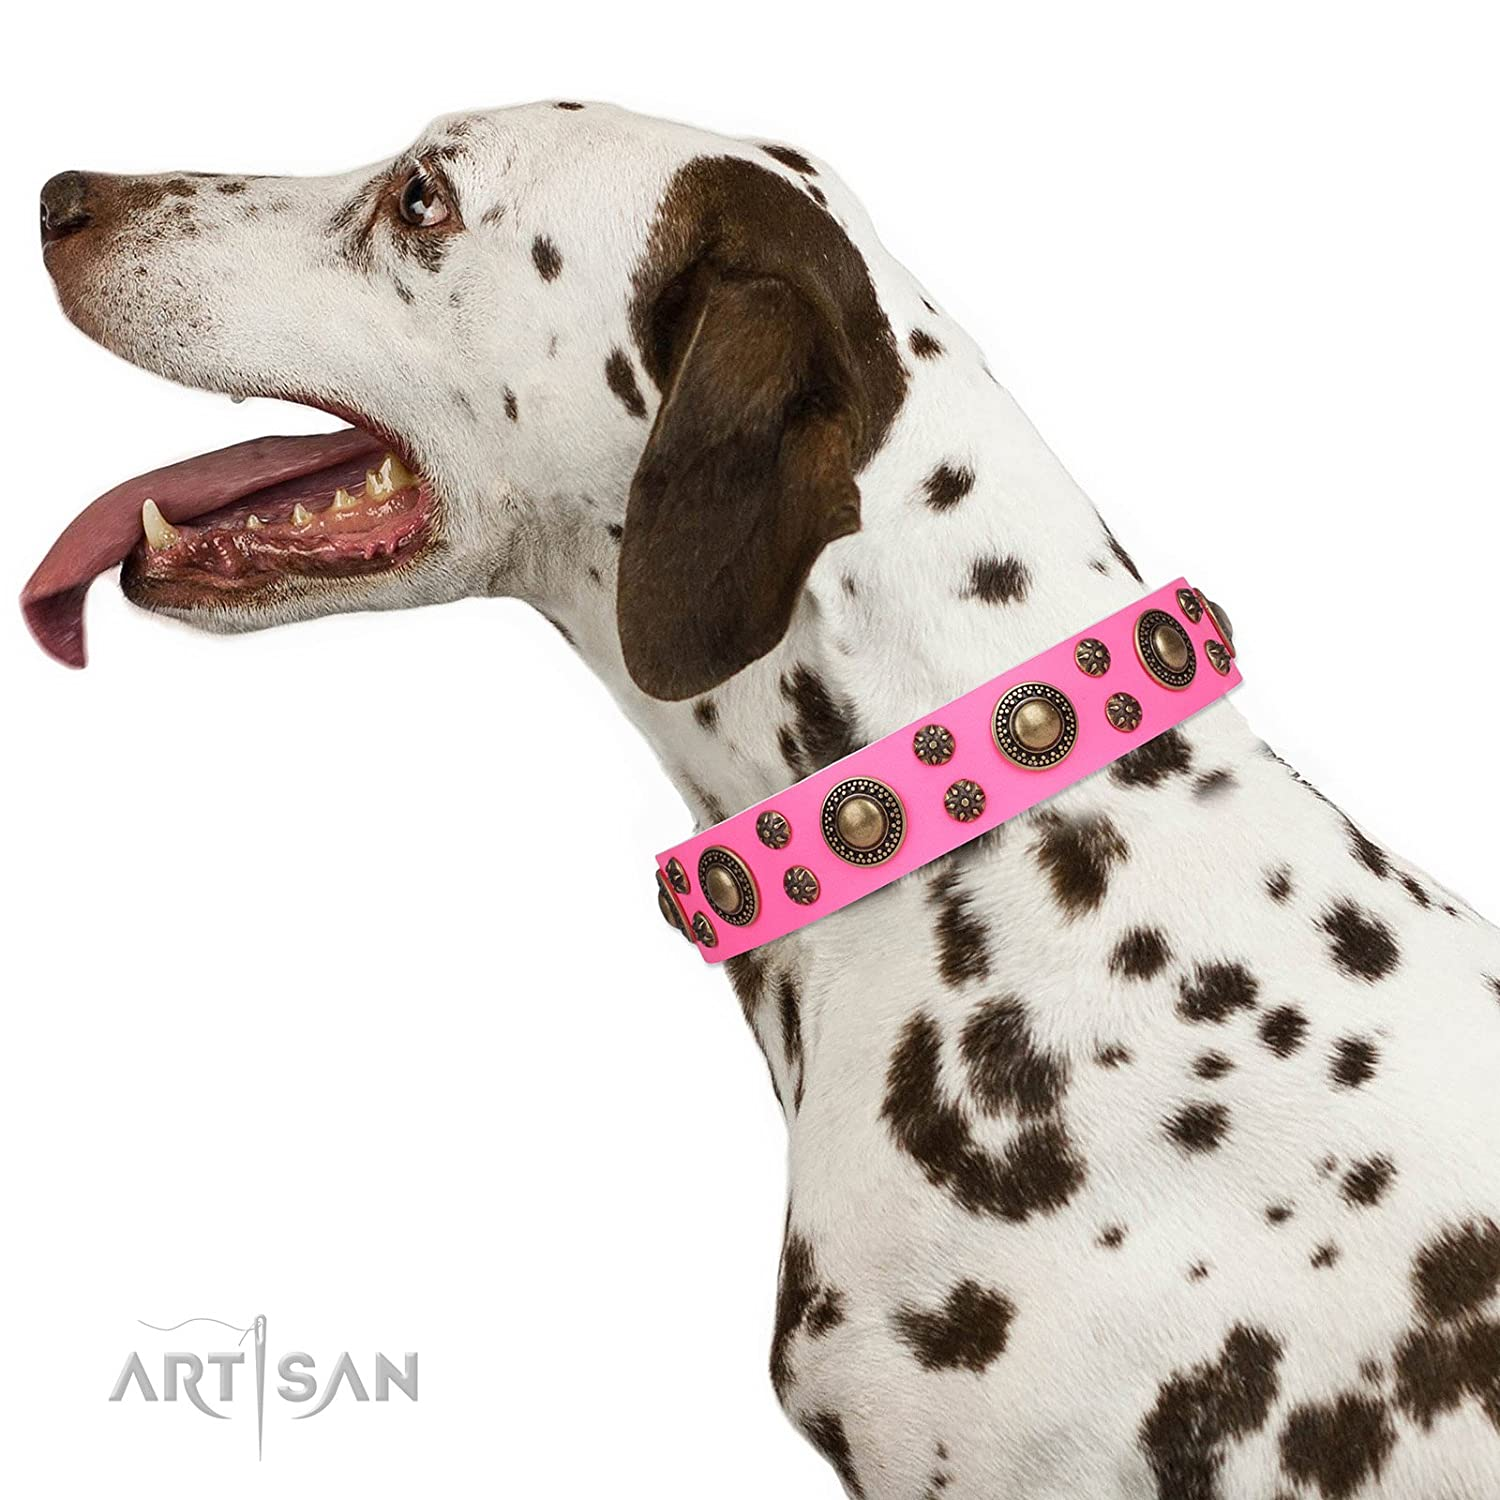 Fits for 28 inch (70cm) dog's neck size FDT Artisan 28 inch Pink Leather Dog Collar with Brass Plated Decor  Pink of Perfection  Gift Box Included